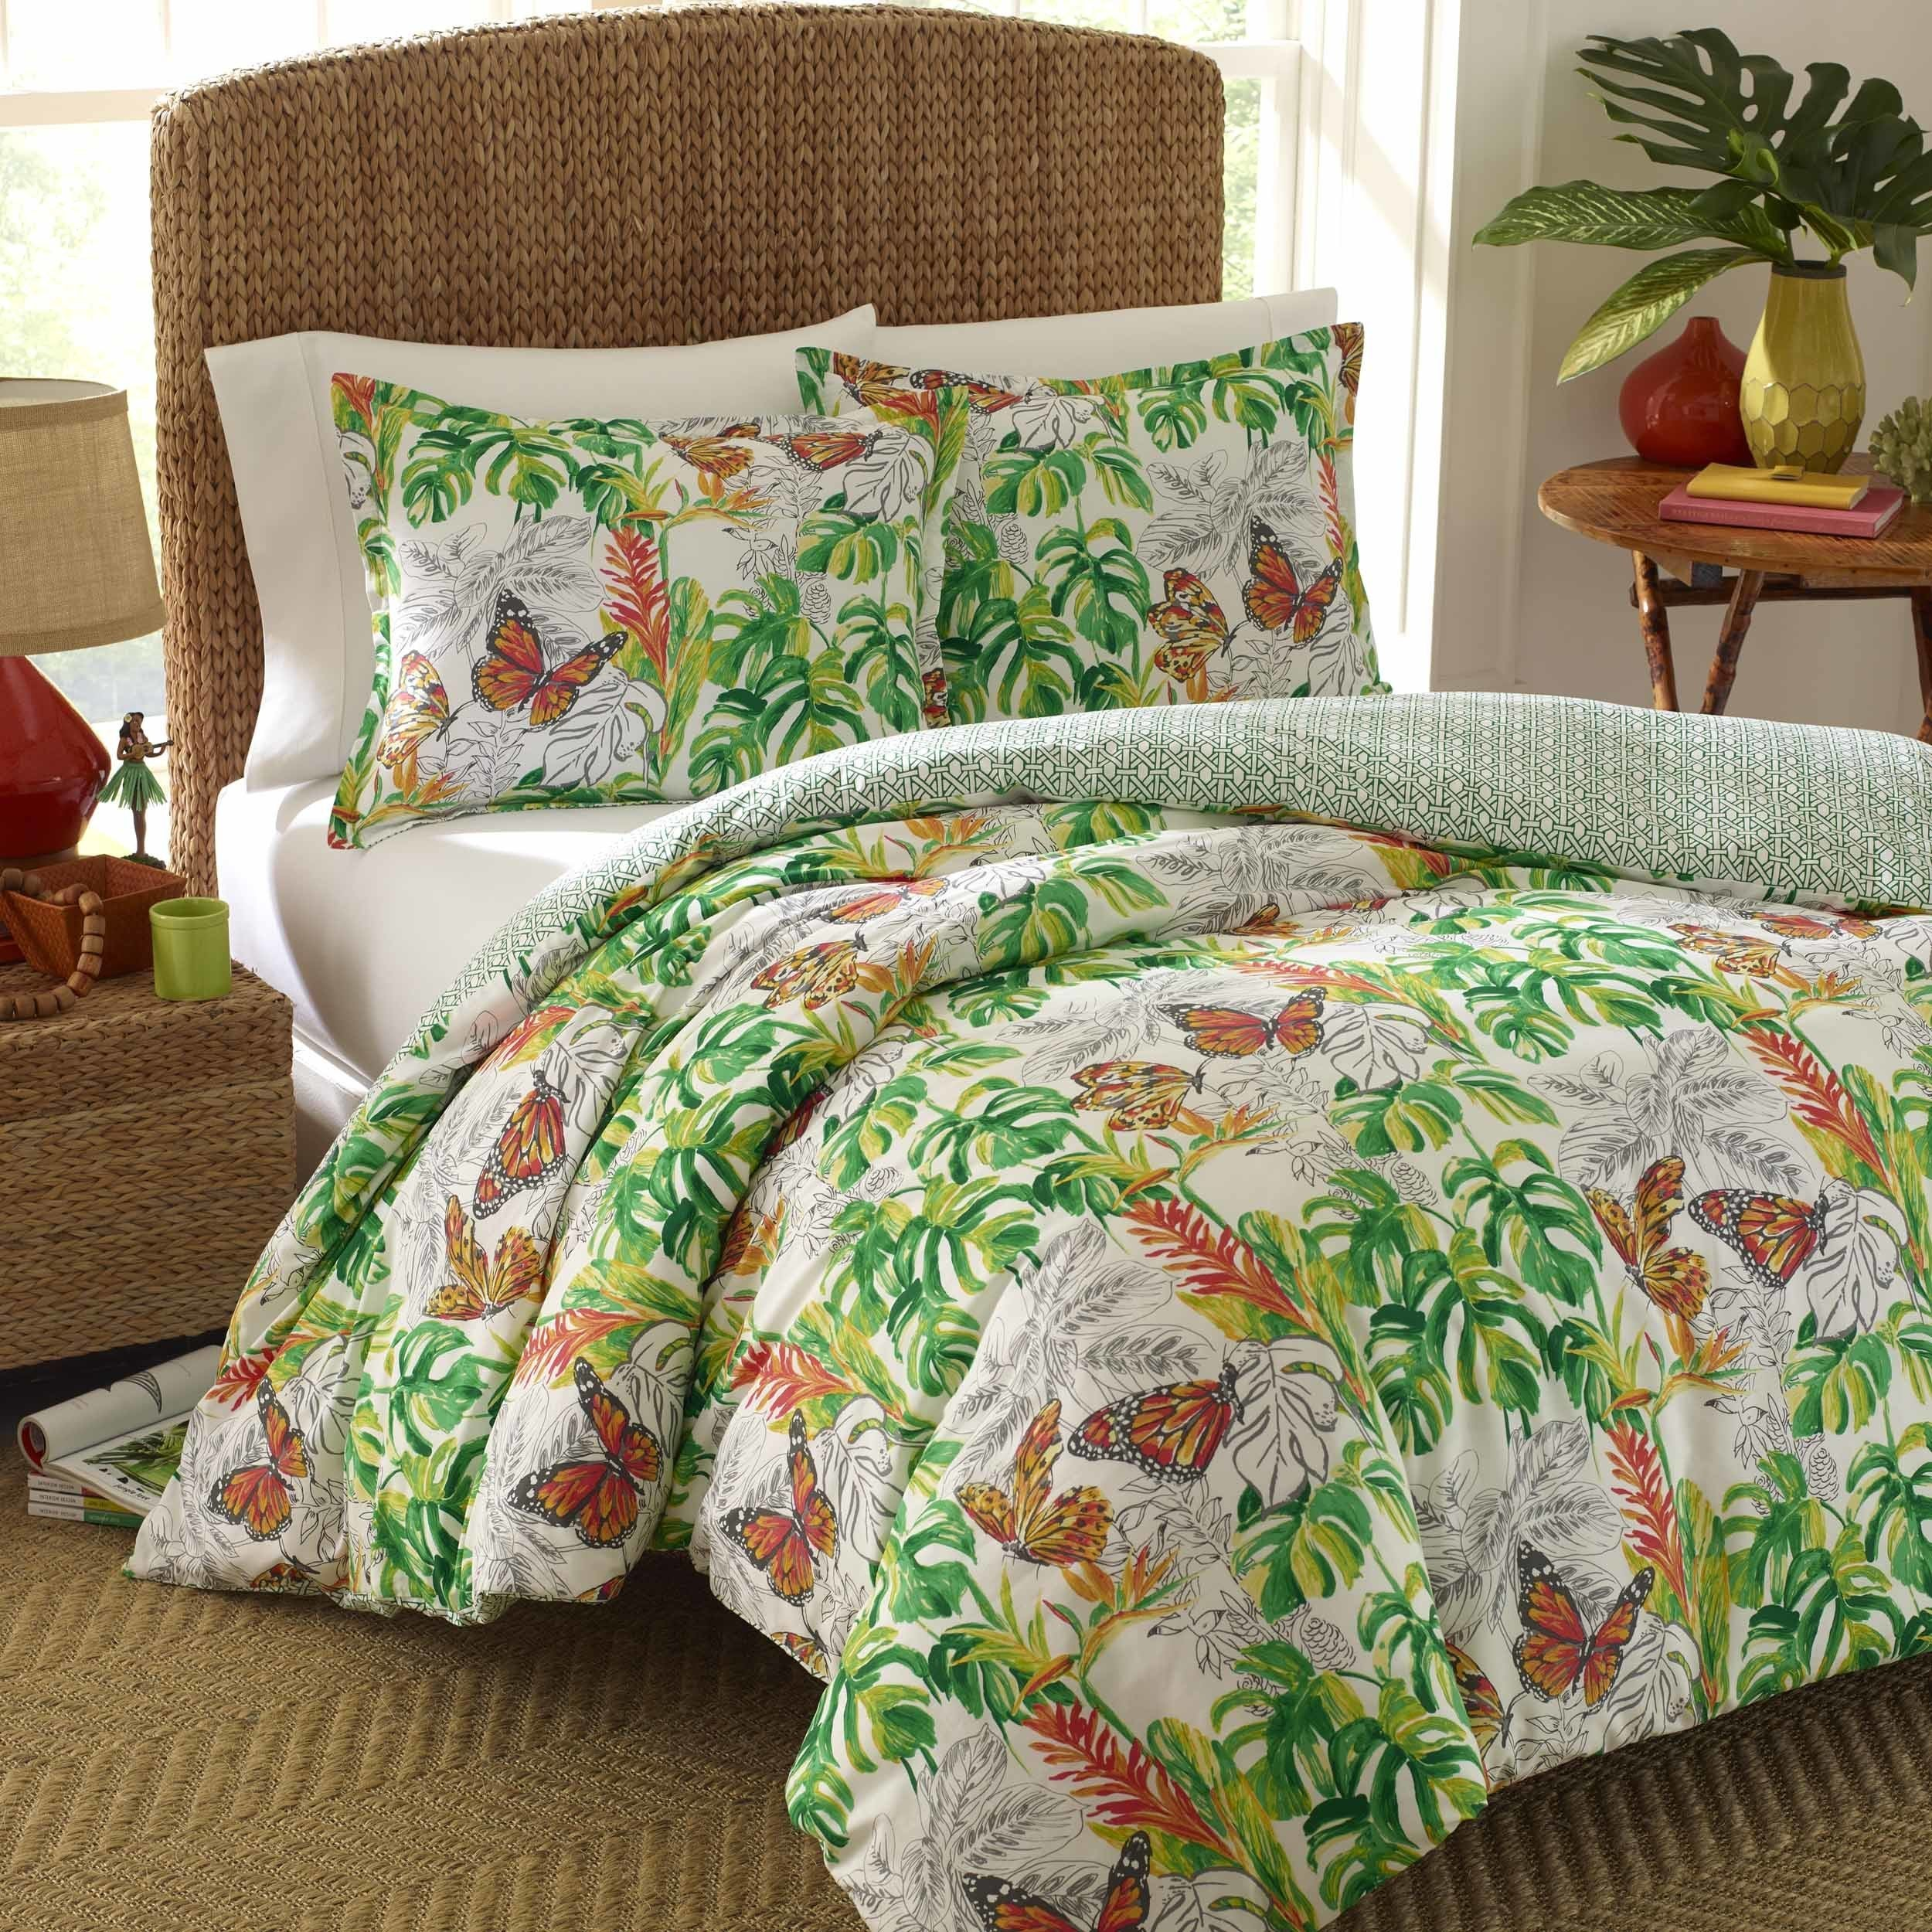 uk quilt co home bed multi glaze kitchen dp amazon cover set comforter butterfly duvet bedding single